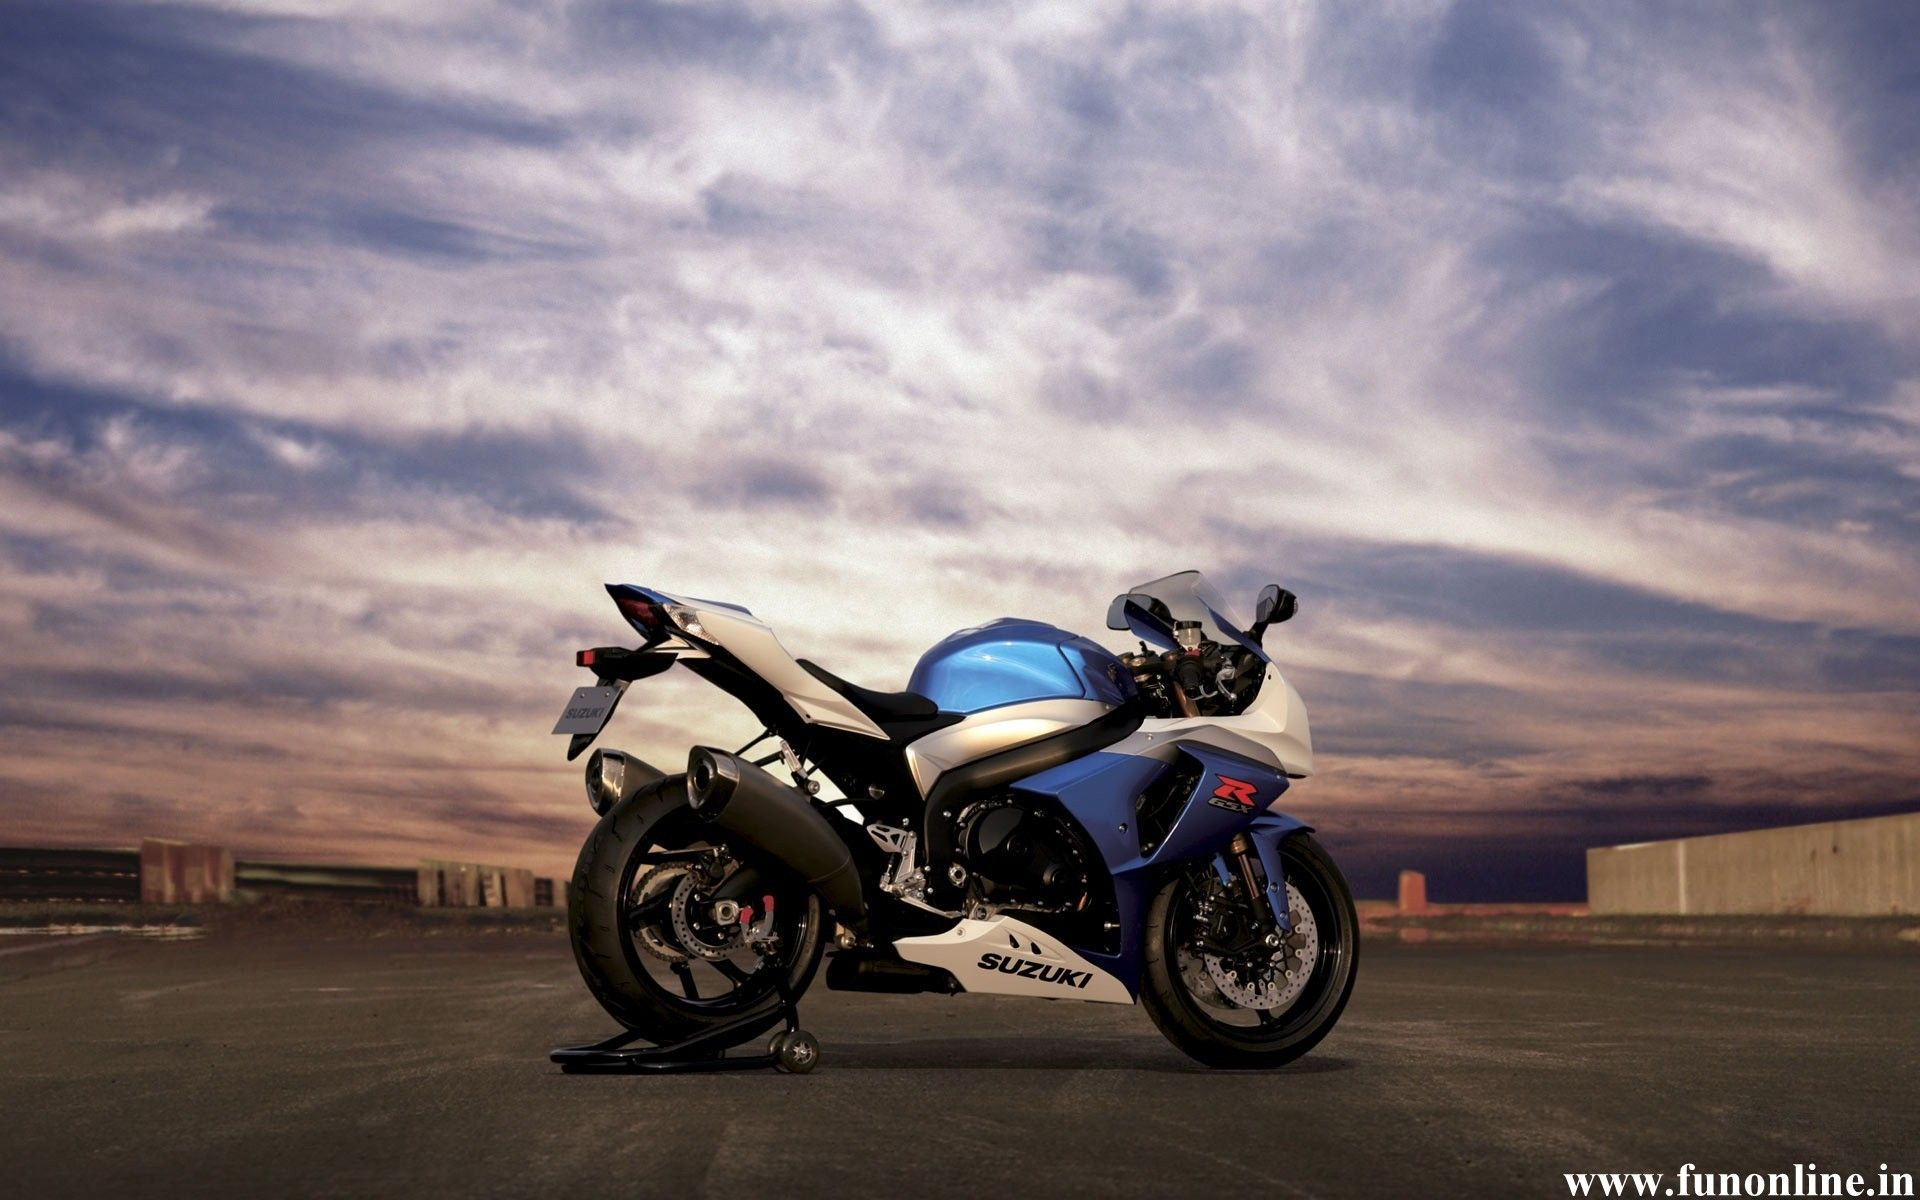 Iphone 6 Sport Bike Wallpapers Hd Desktop Backgrounds 750x1334 Motorcycle Wallpaper Super Bikes Sport Bikes